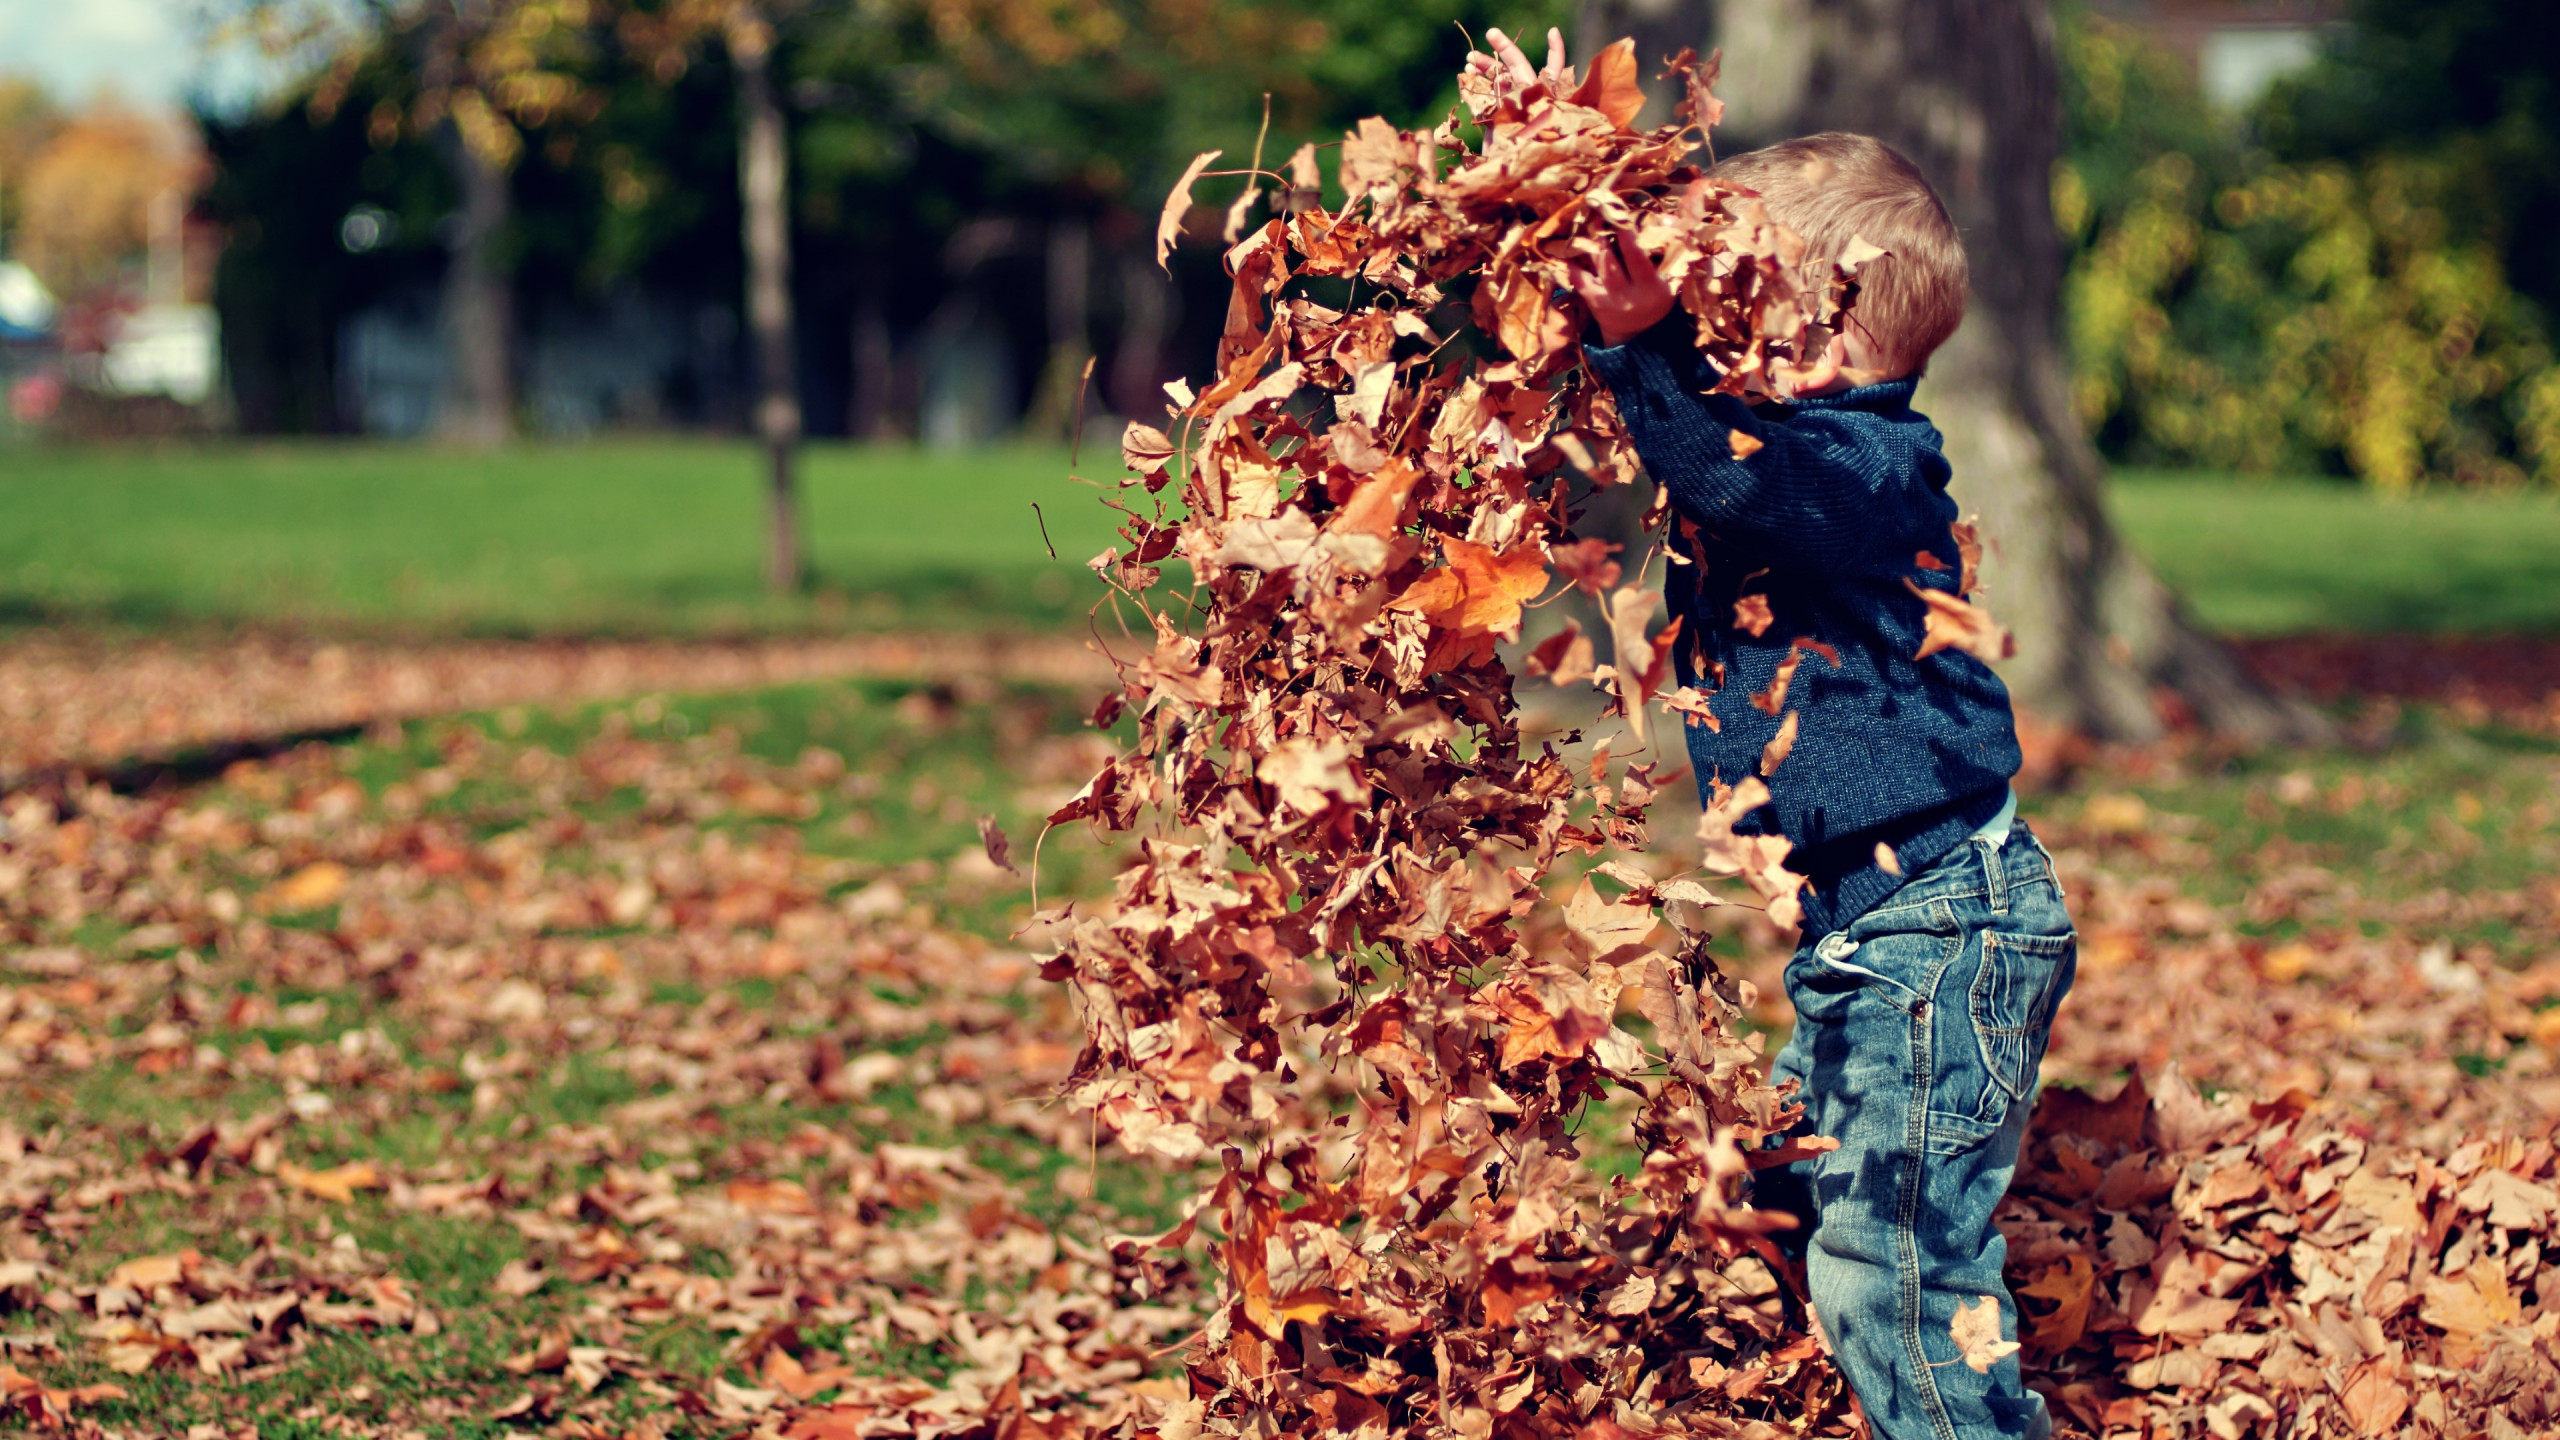 The child is playing with leaves | 2560x1440 wallpaper